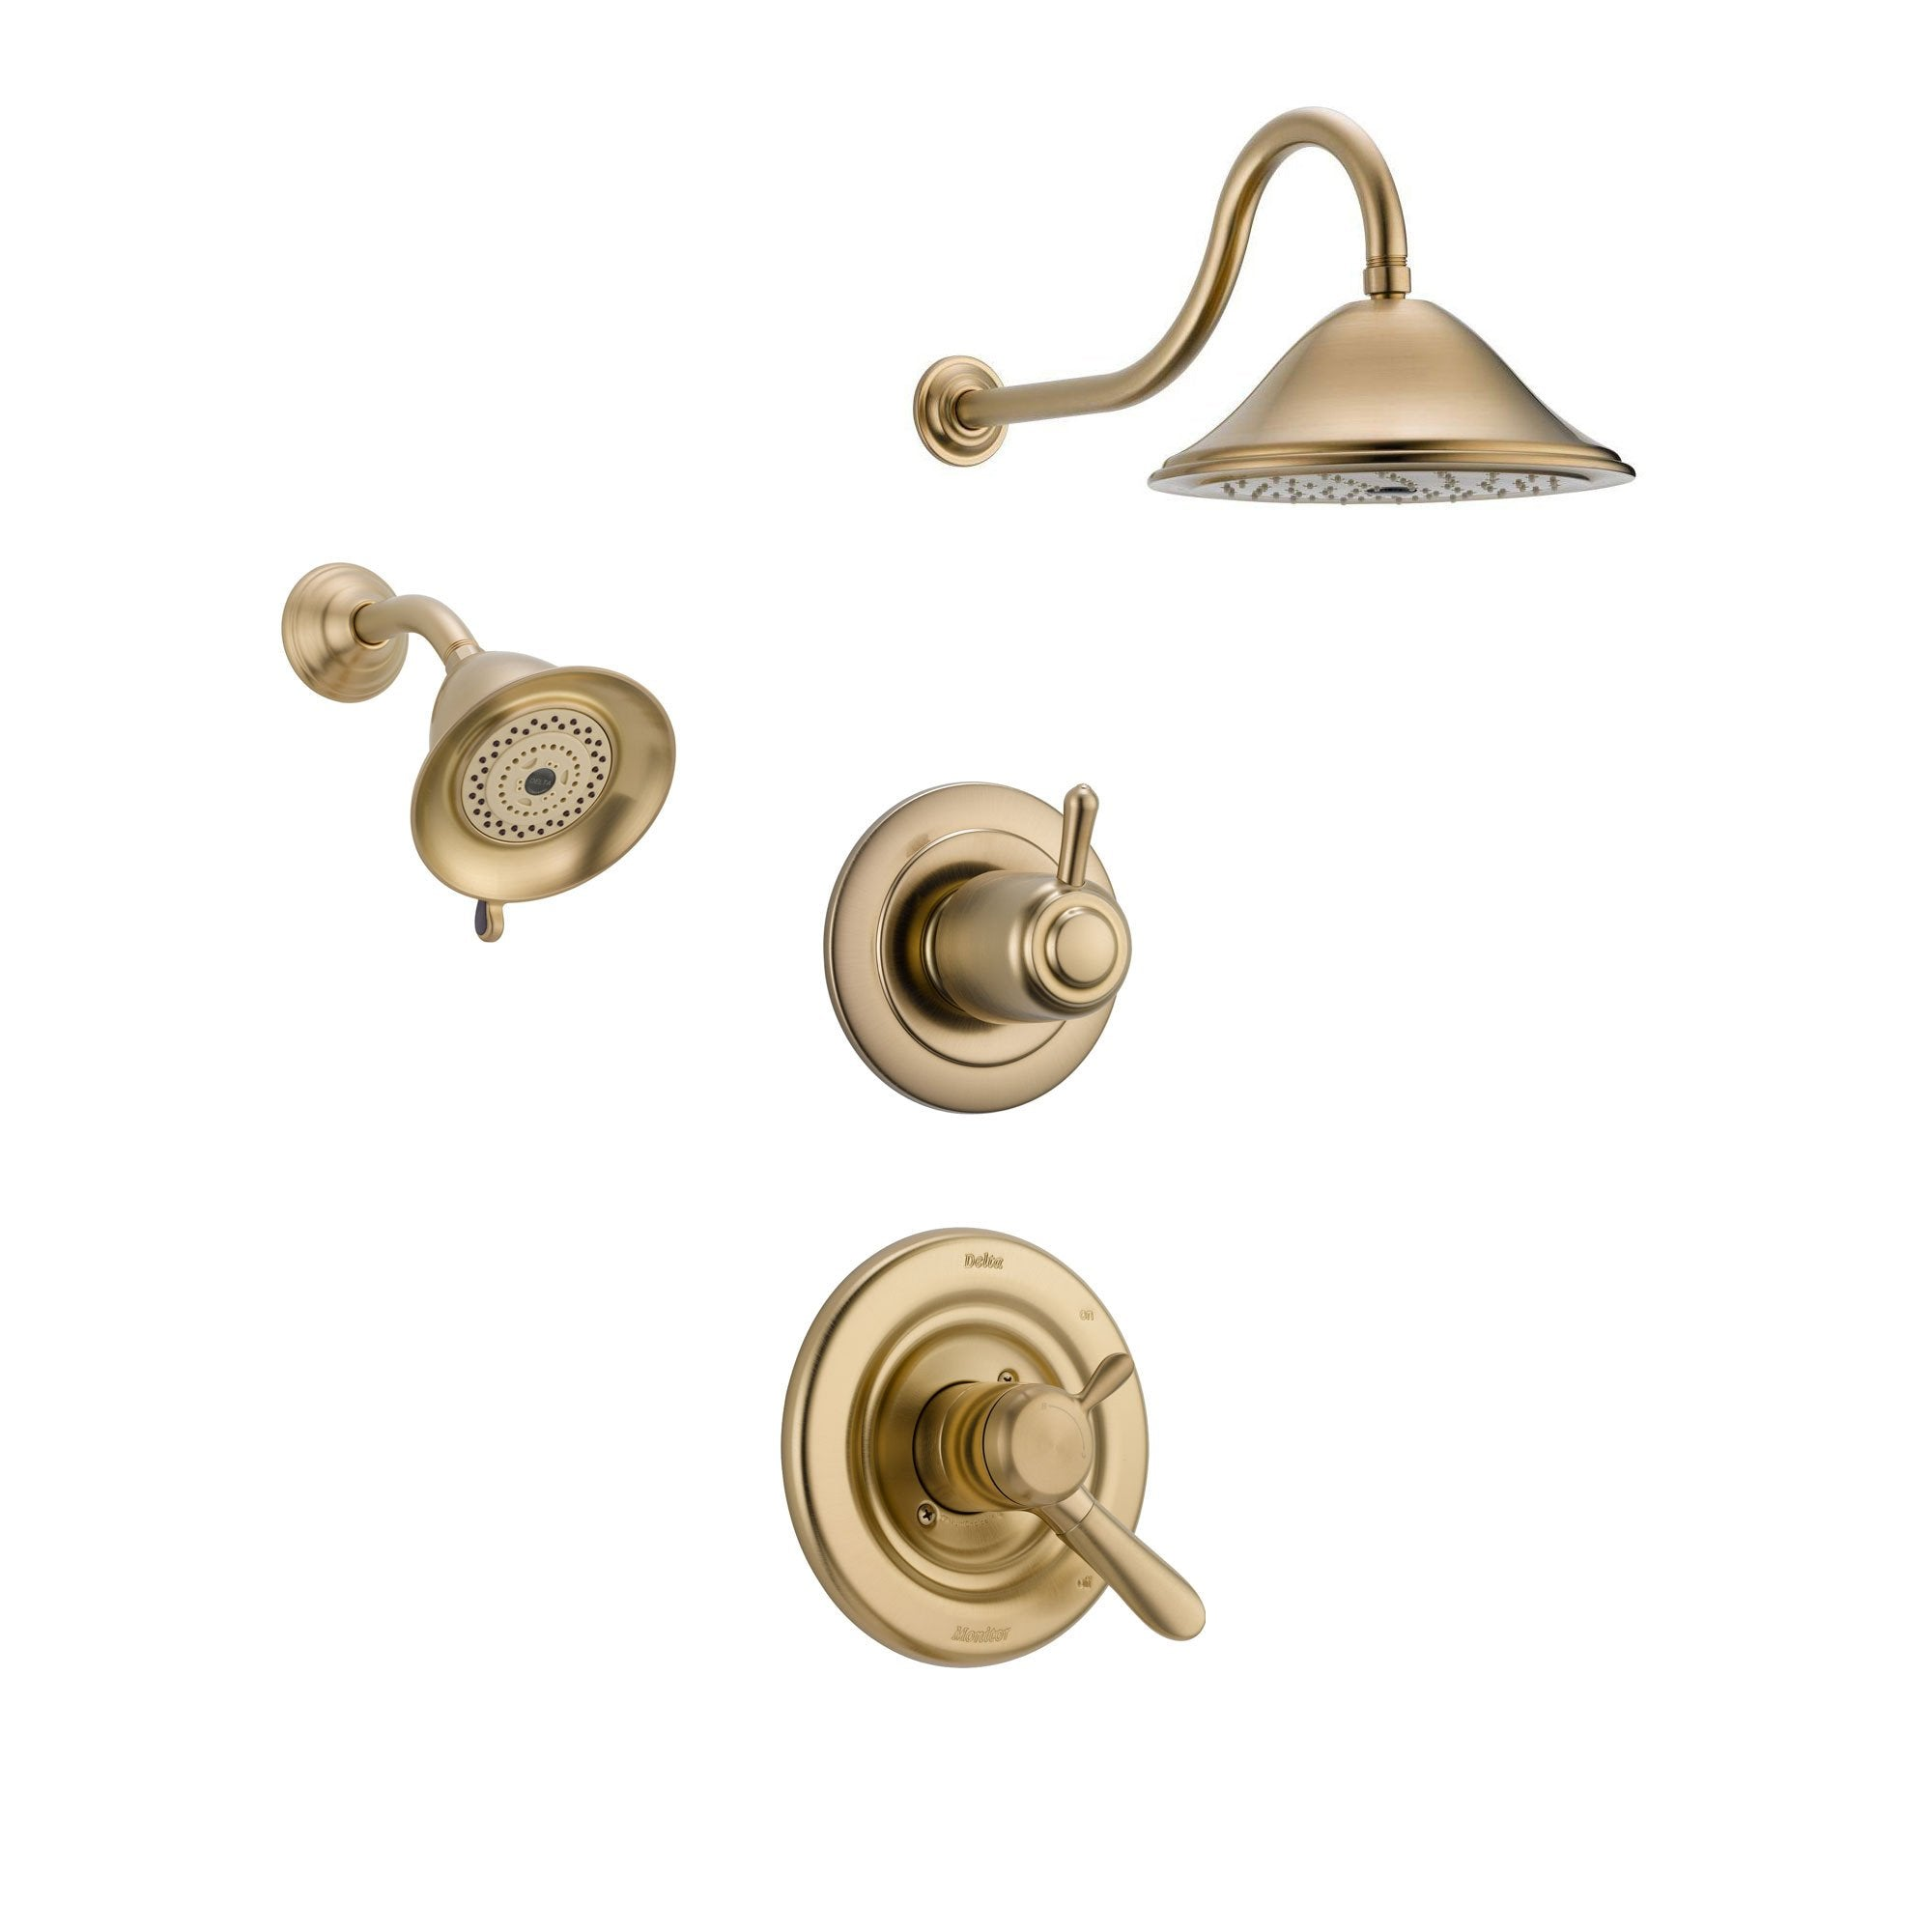 Delta Lahara Champagne Bronze Shower System with Dual Control Shower Handle, 3-setting Diverter, Large Rain Showerhead, and Smaller Wall Mount Showerhead SS173883CZ